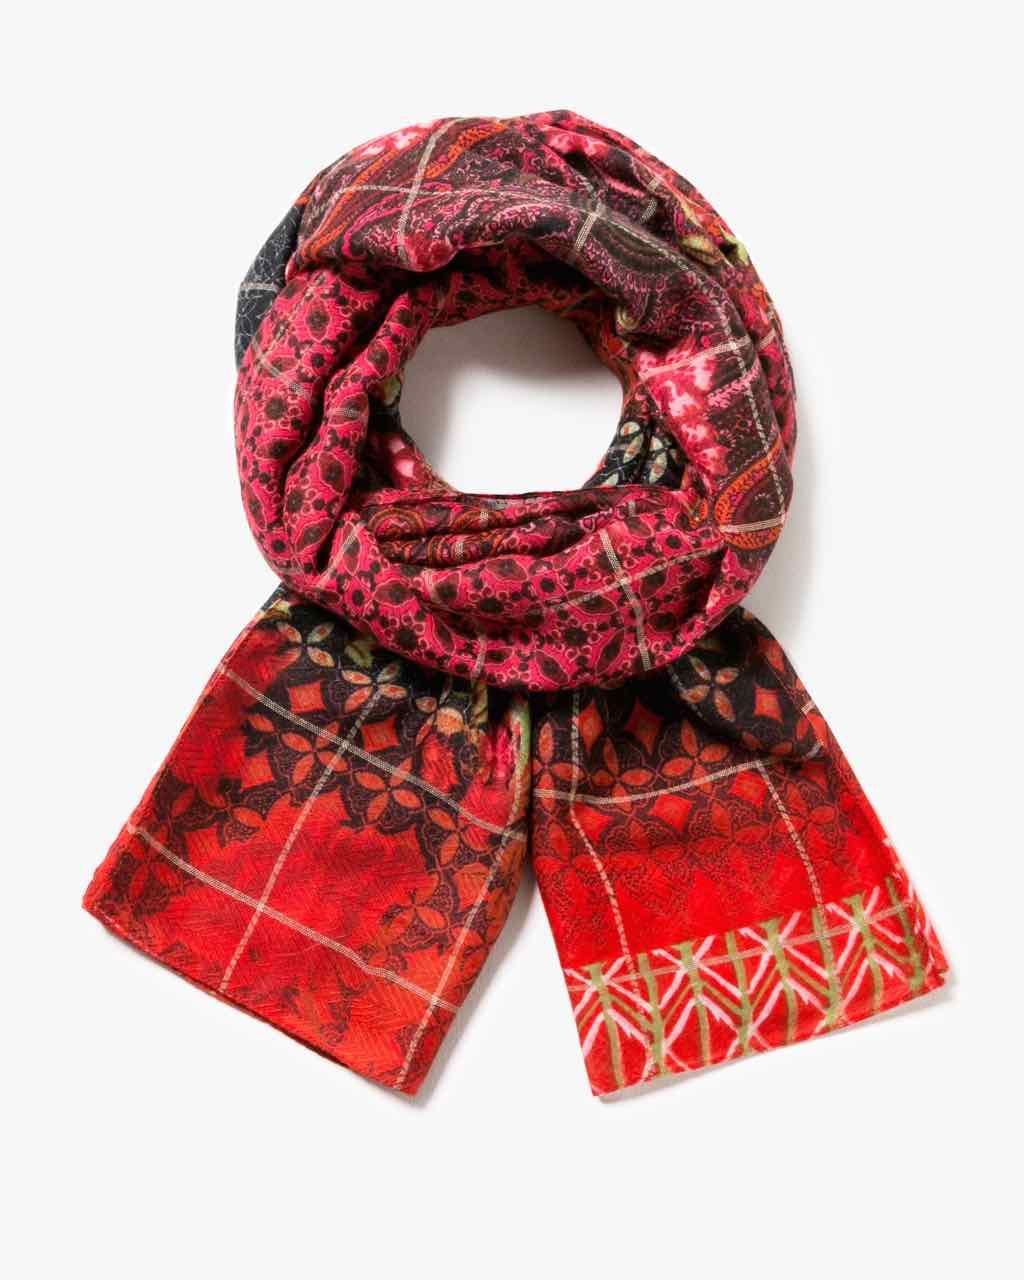 17WAWFC8_3000 Desigual Scarf Rectangle Boho (Carmin) Buy Onlline